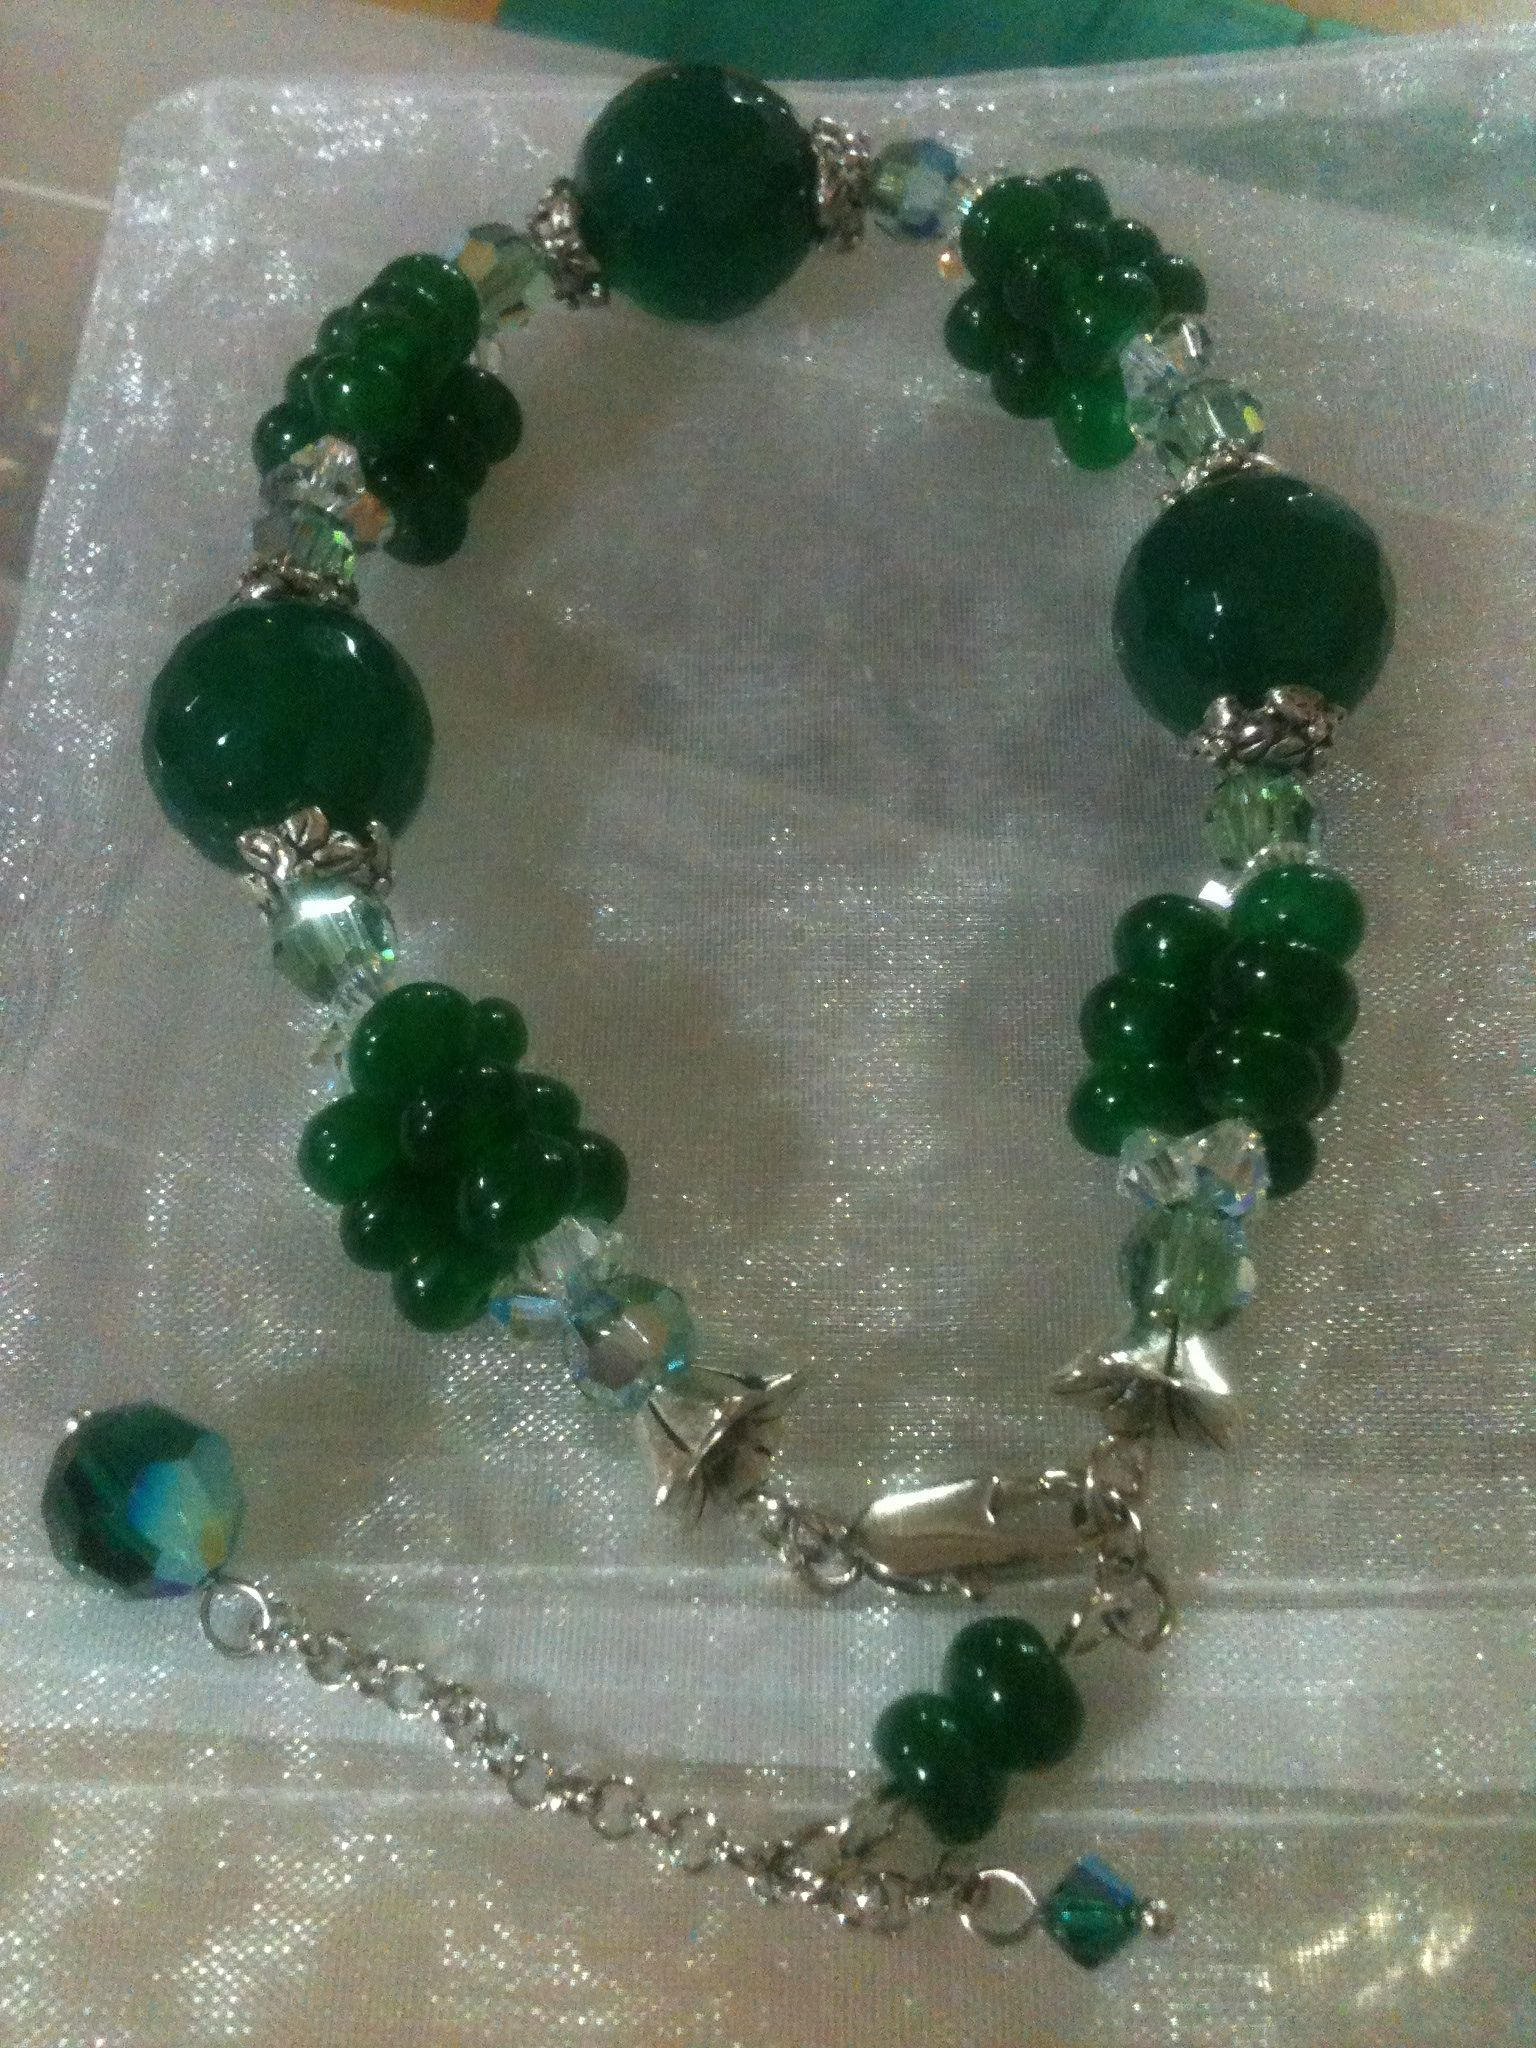 Green Bracelet 01 Materials : Jade Stones (kecubung), Swarovski, Metal Beads, Rodhium Chains, & Nylon String.